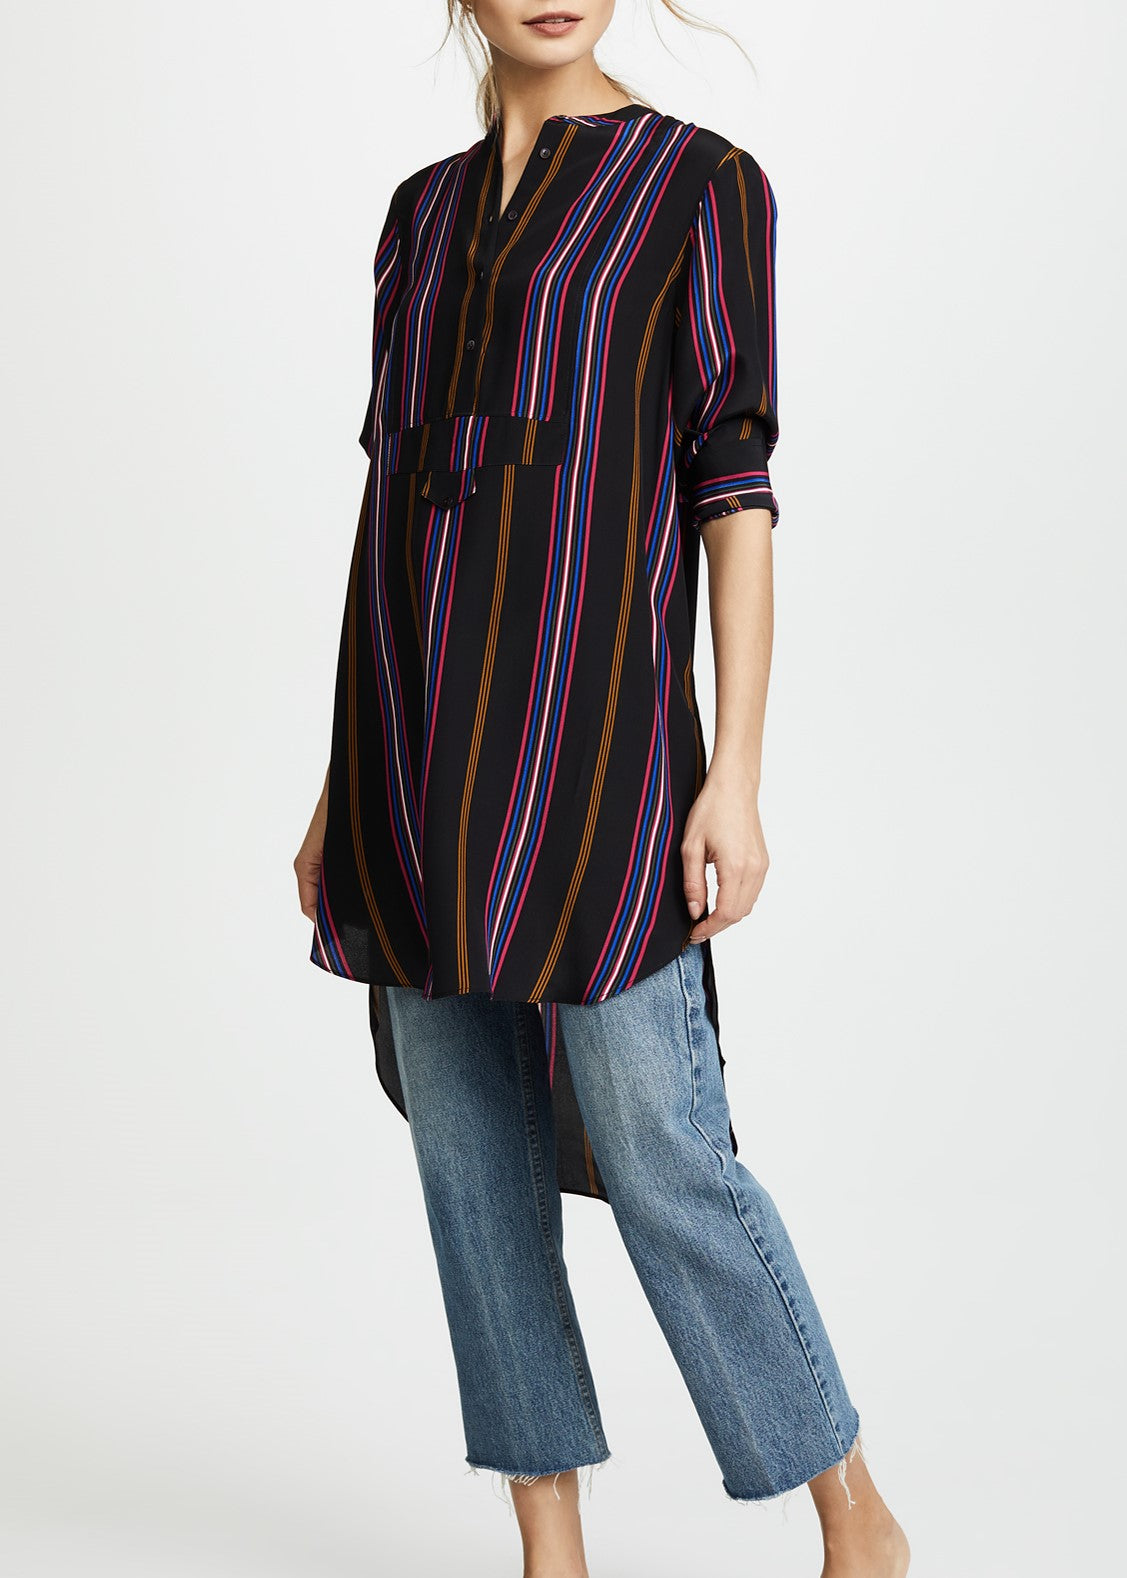 Figue Thalie dress in ashbury stripe